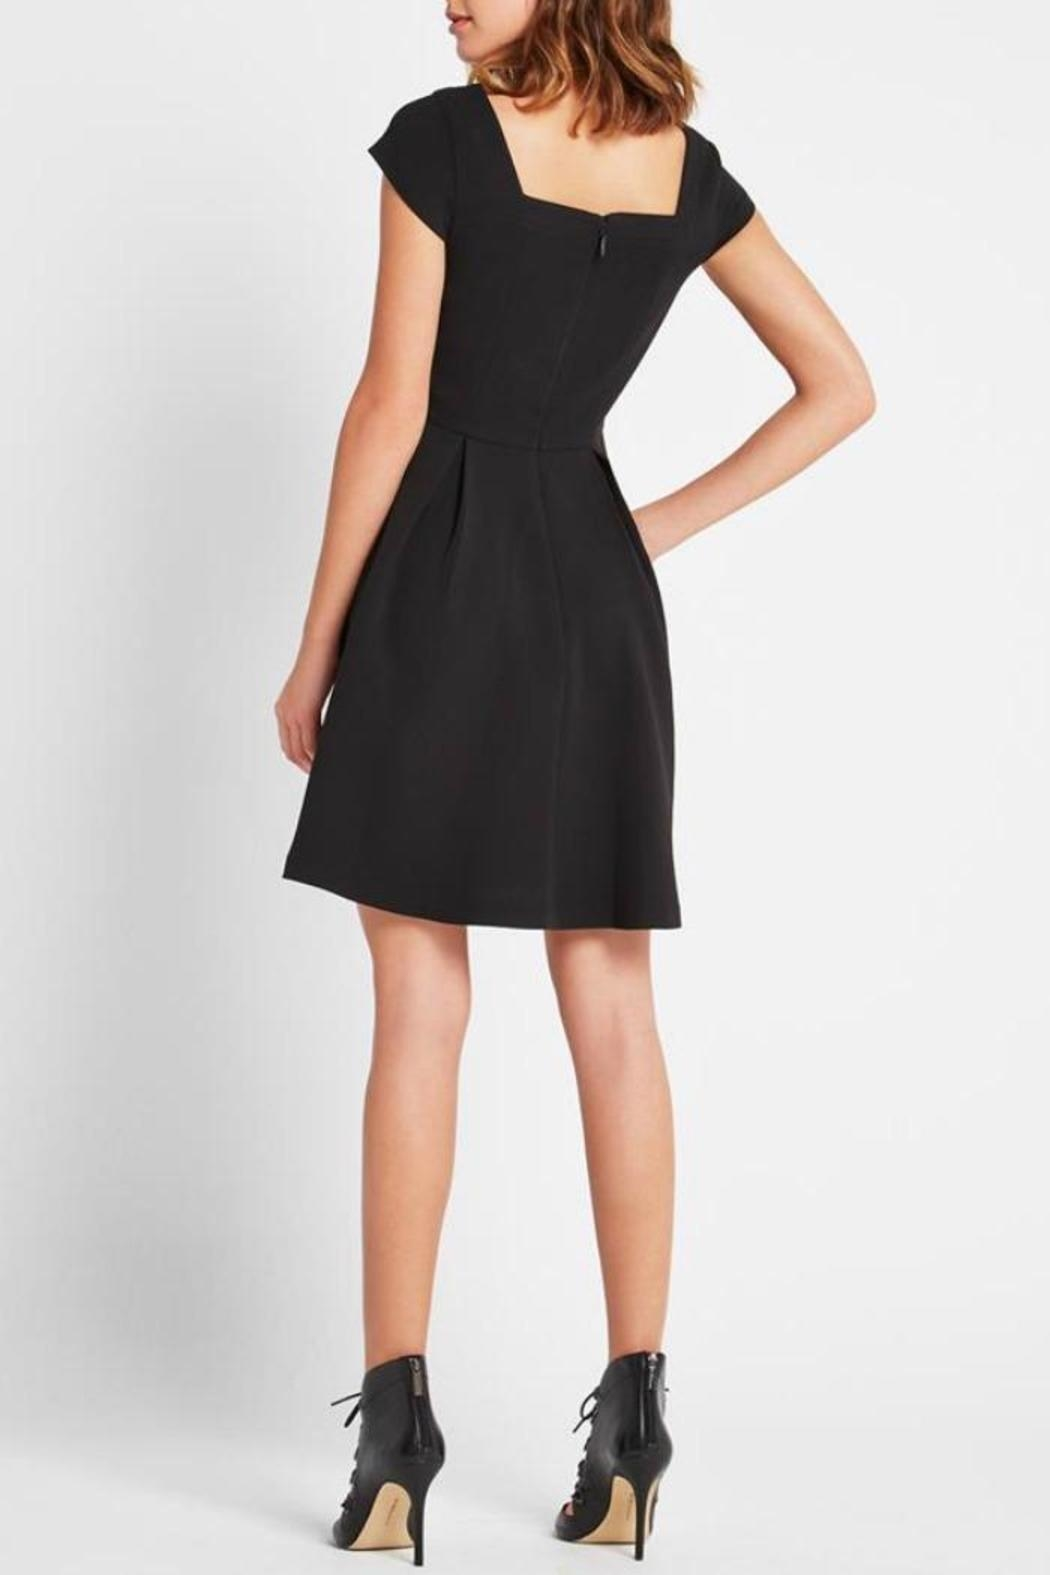 BCBGeneration Classic Black Dress - Side Cropped Image